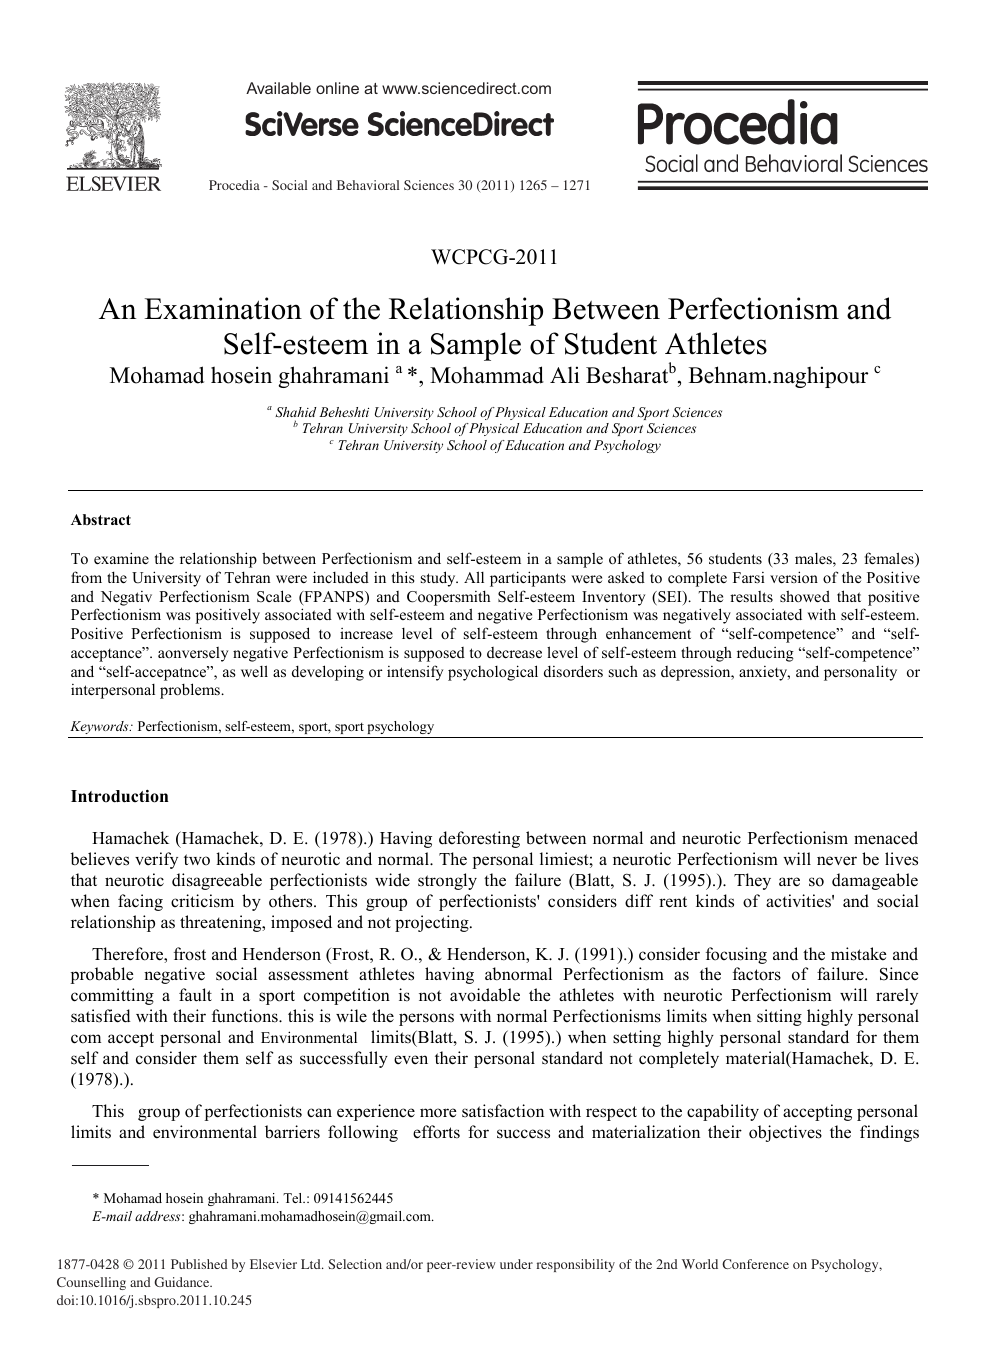 An Examination of the Relationship Between Perfectionism and